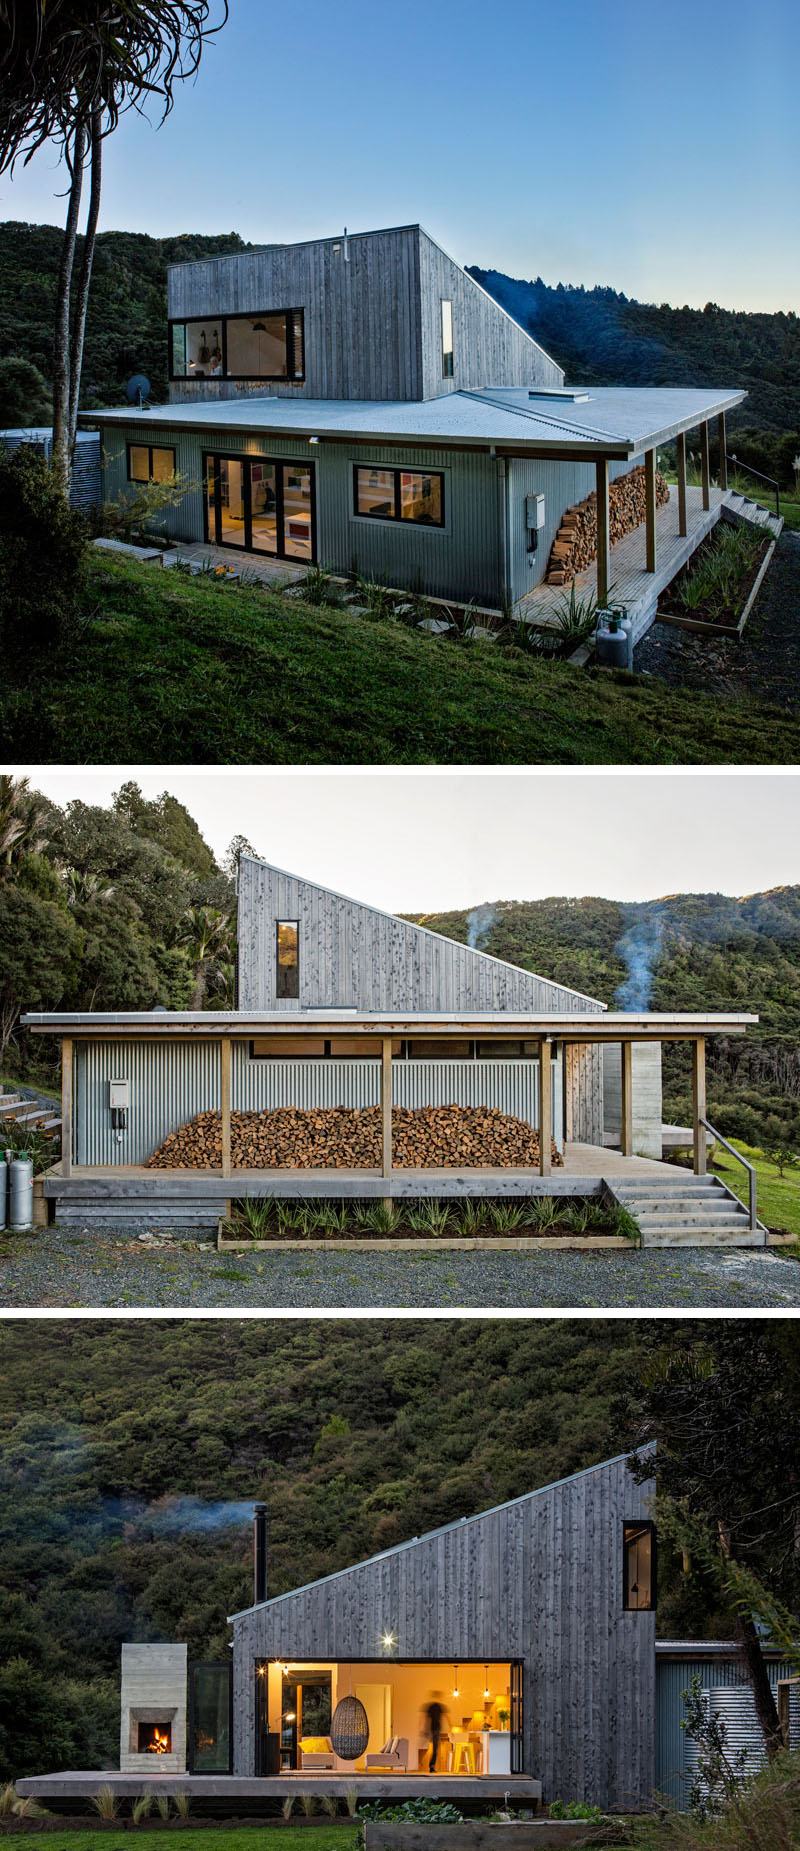 small-modern-wood-house-architecture-010917-100-02